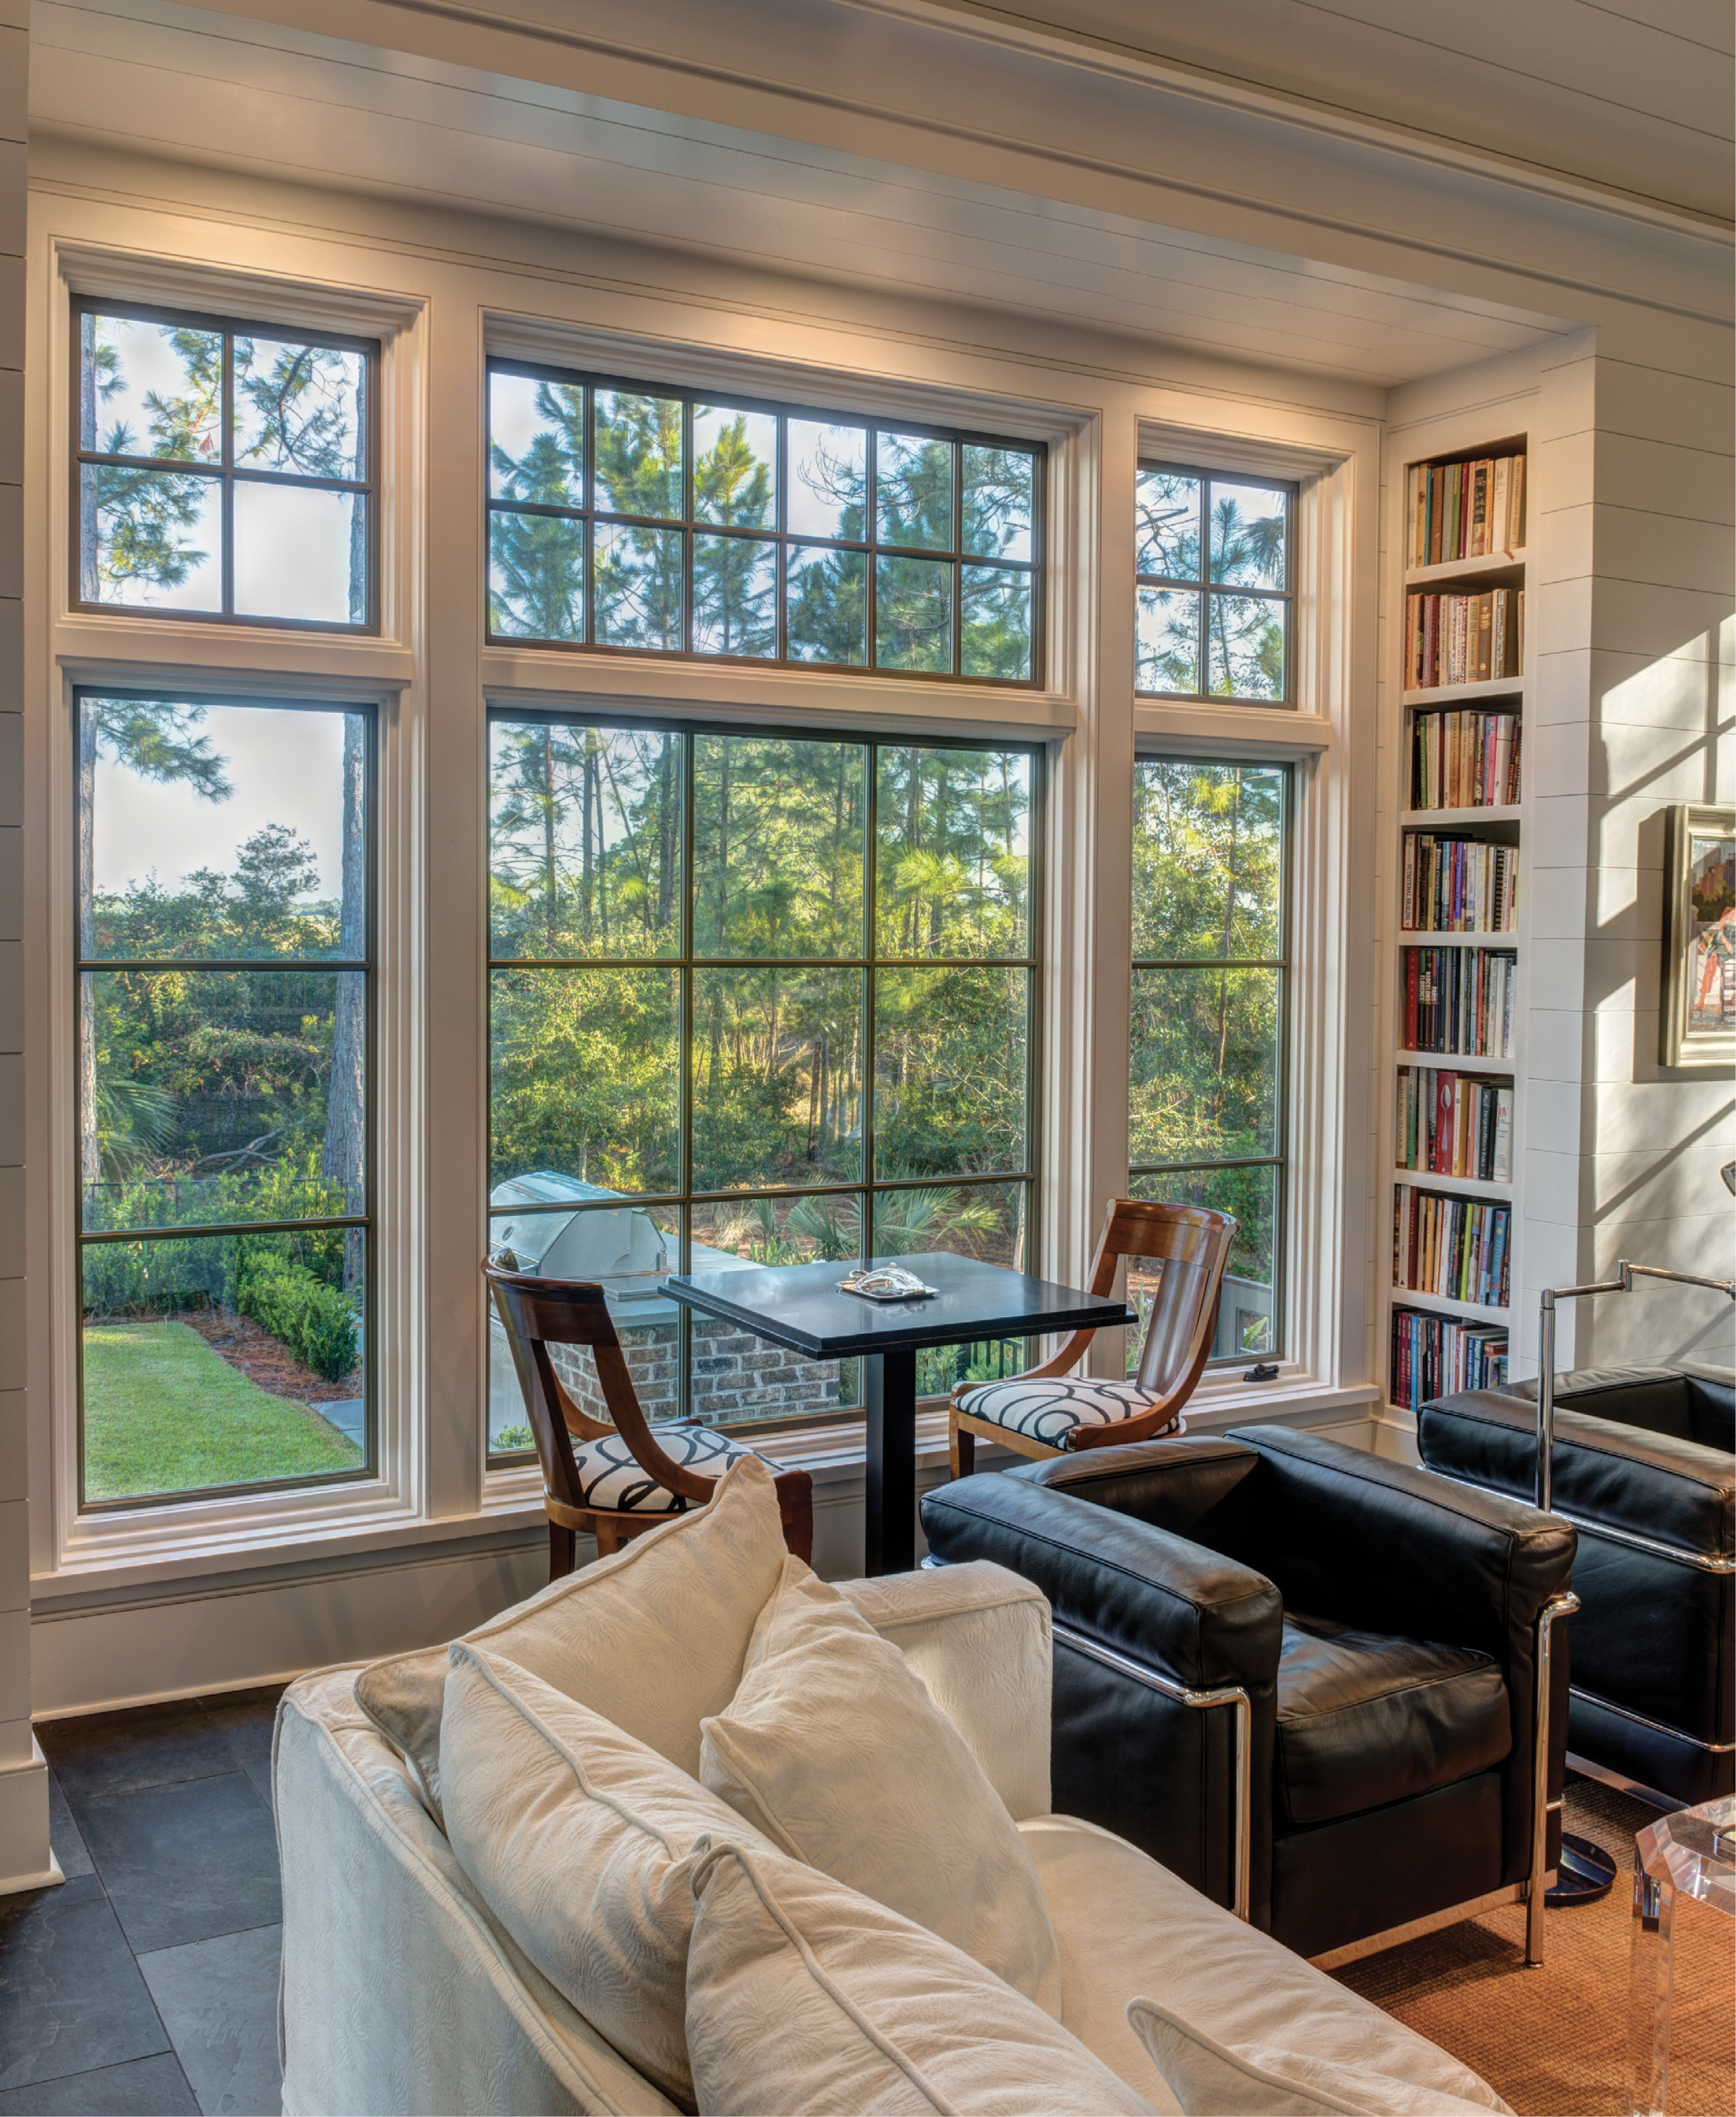 A STUDY IN CLASSICS: Outfitted with shiplap walls, bluestone flooring, and select furnishings by Baker and Ralph Lauren (many designed by architects), the library features a cozy fireplace, plus a wall of custom built-ins.